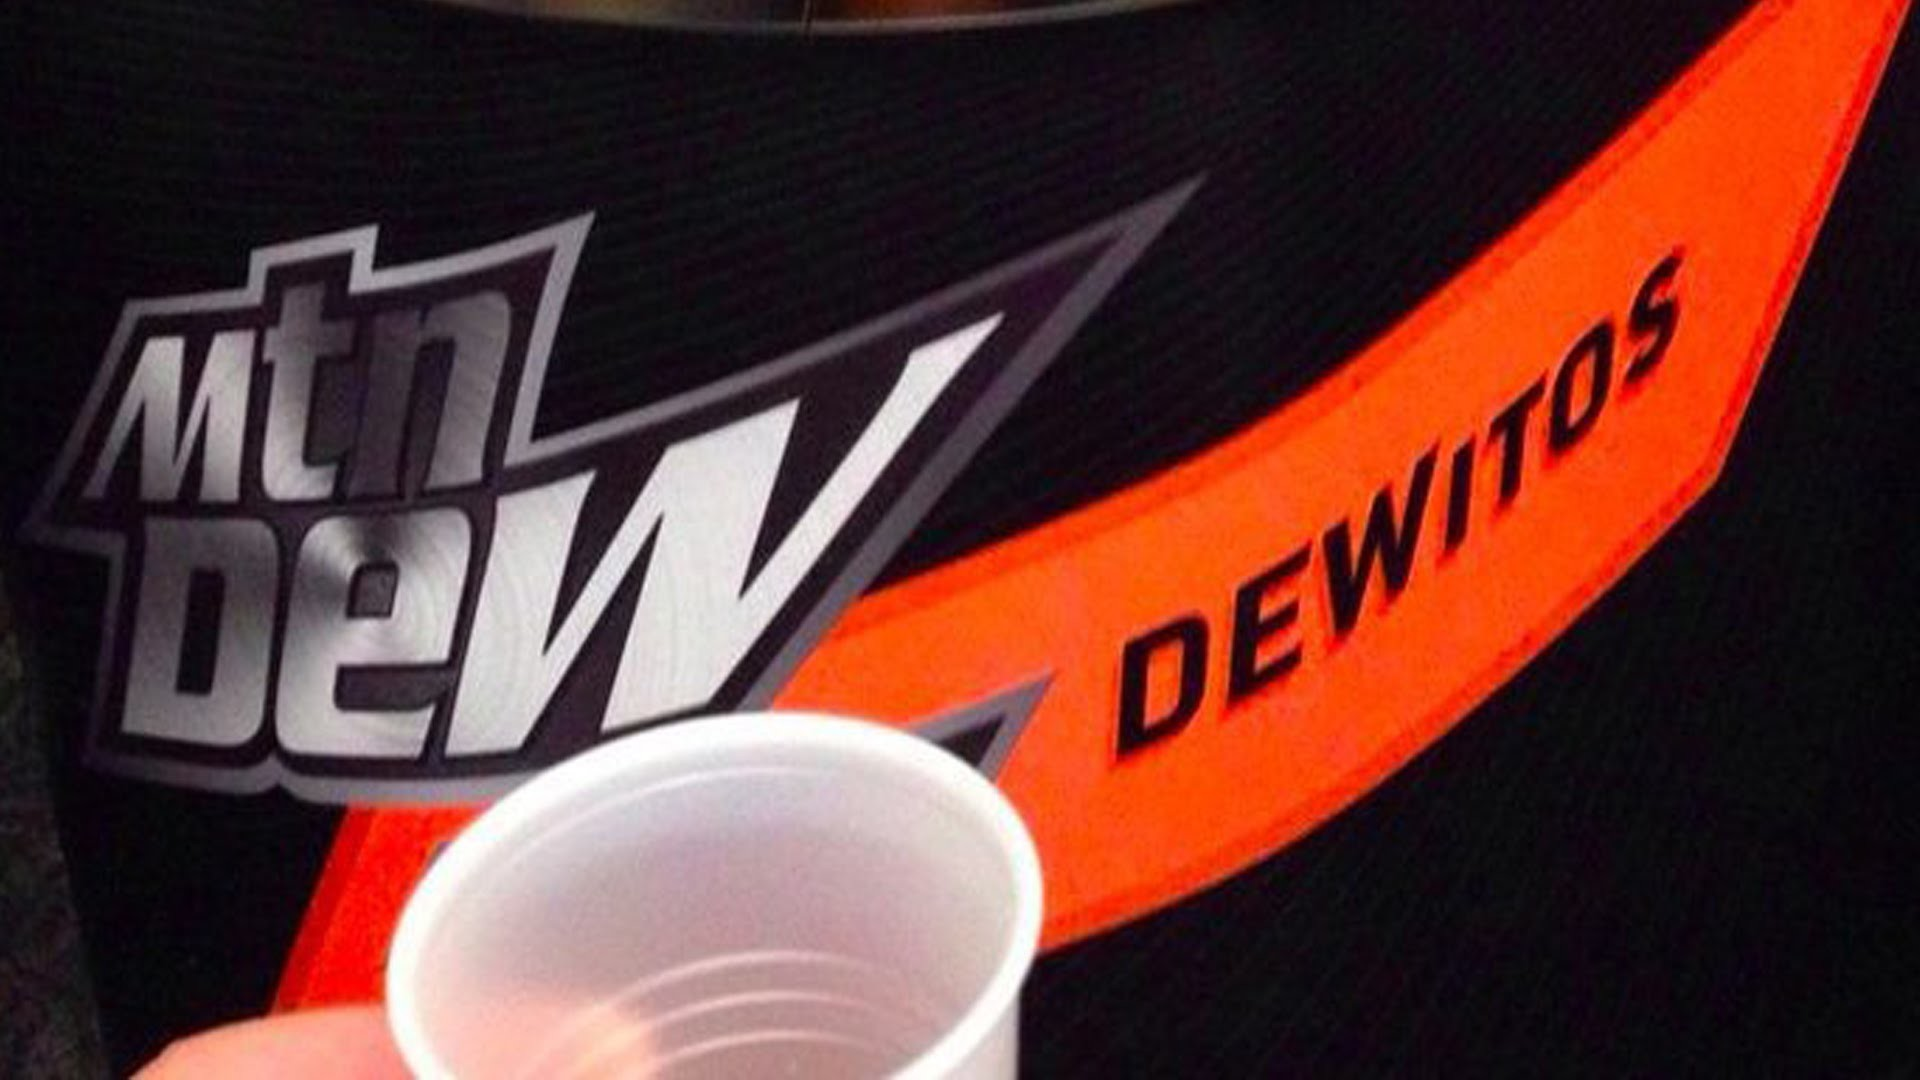 Mountain Dew wallpapers - HD wallpaper Collections ...